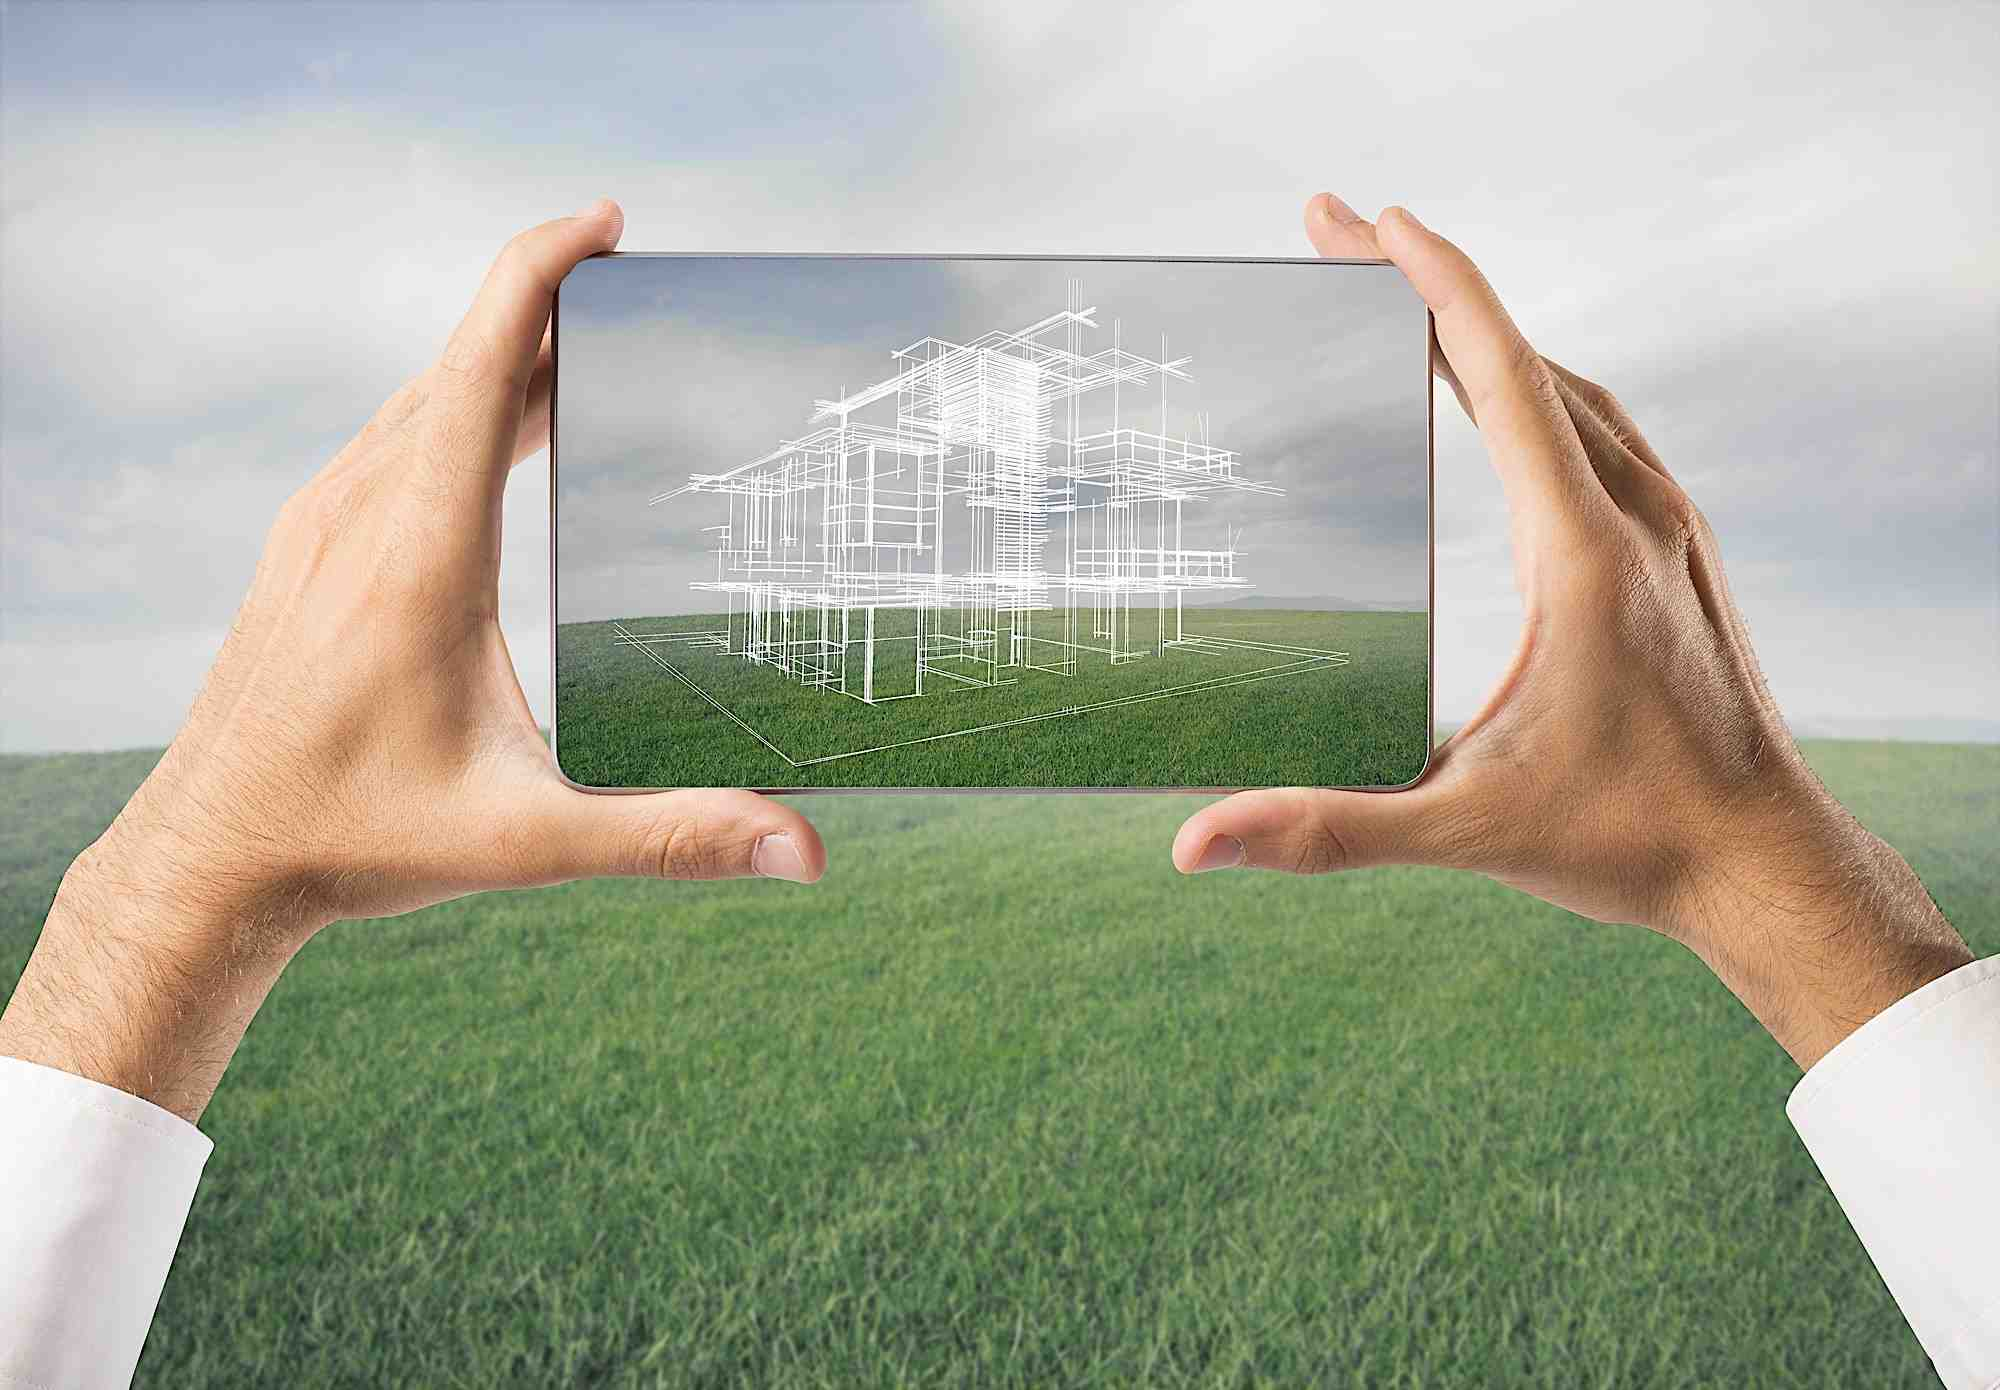 What skills do real estate developers need?